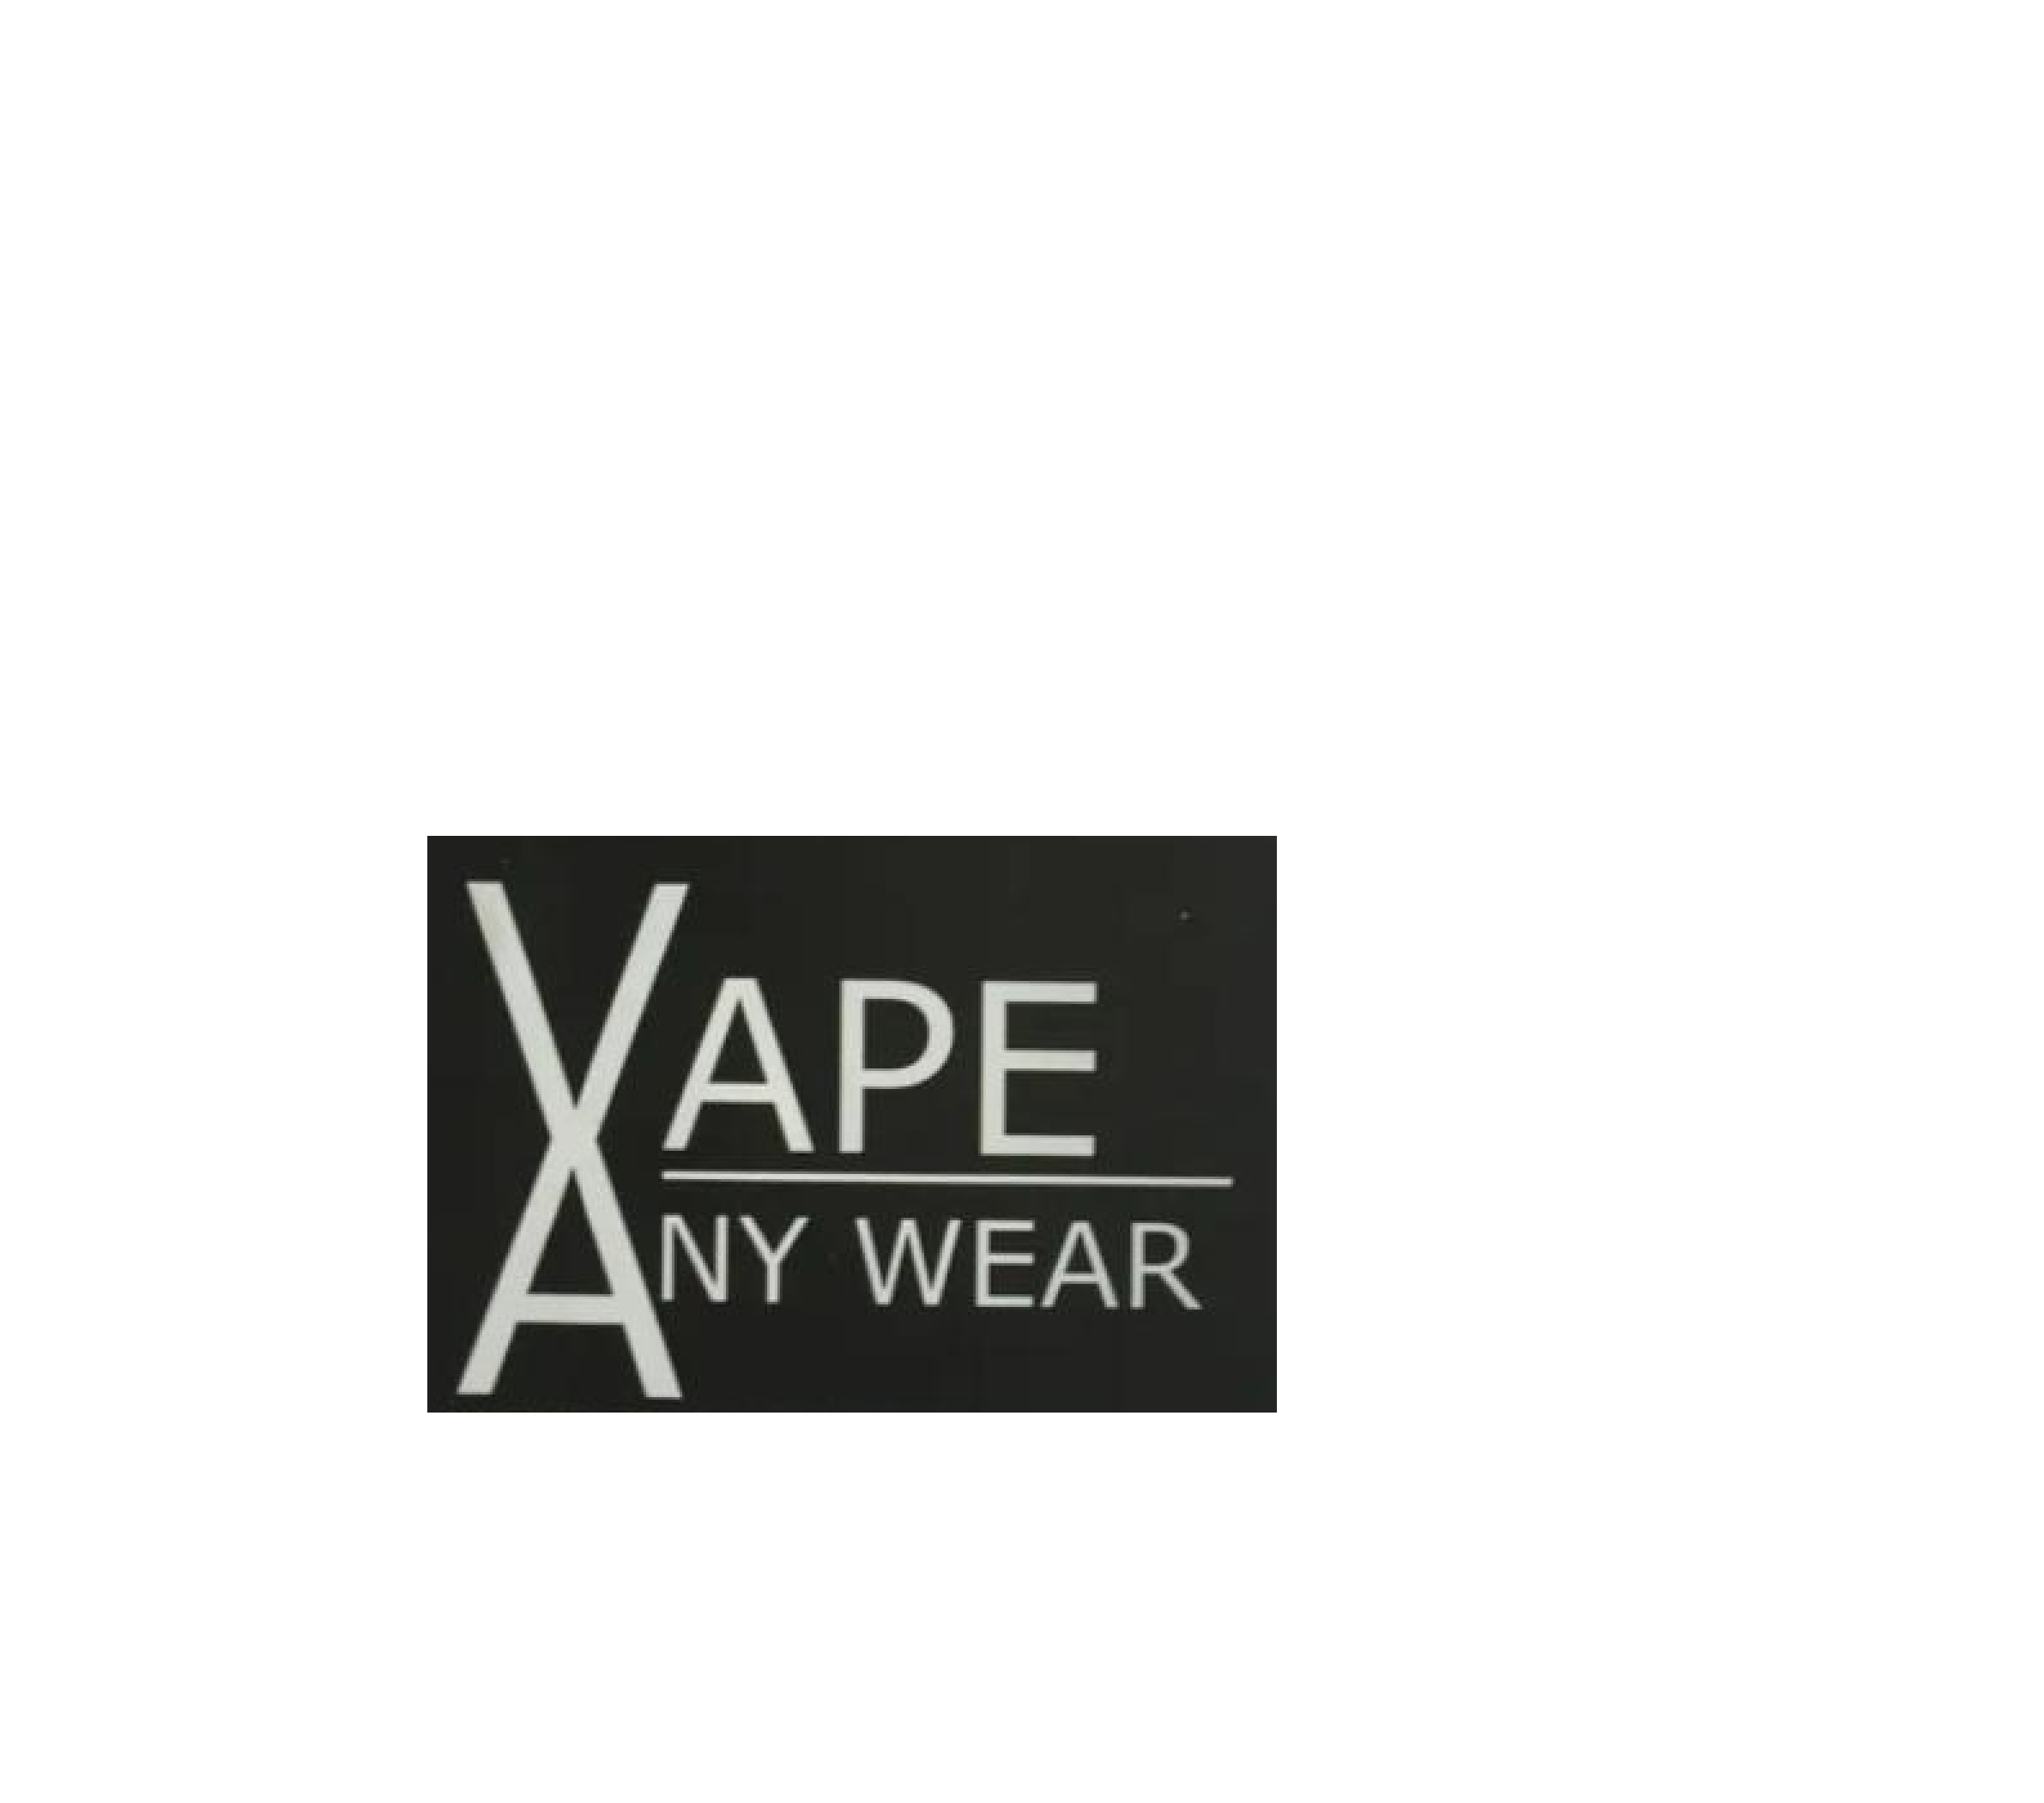 Vape Any Wear